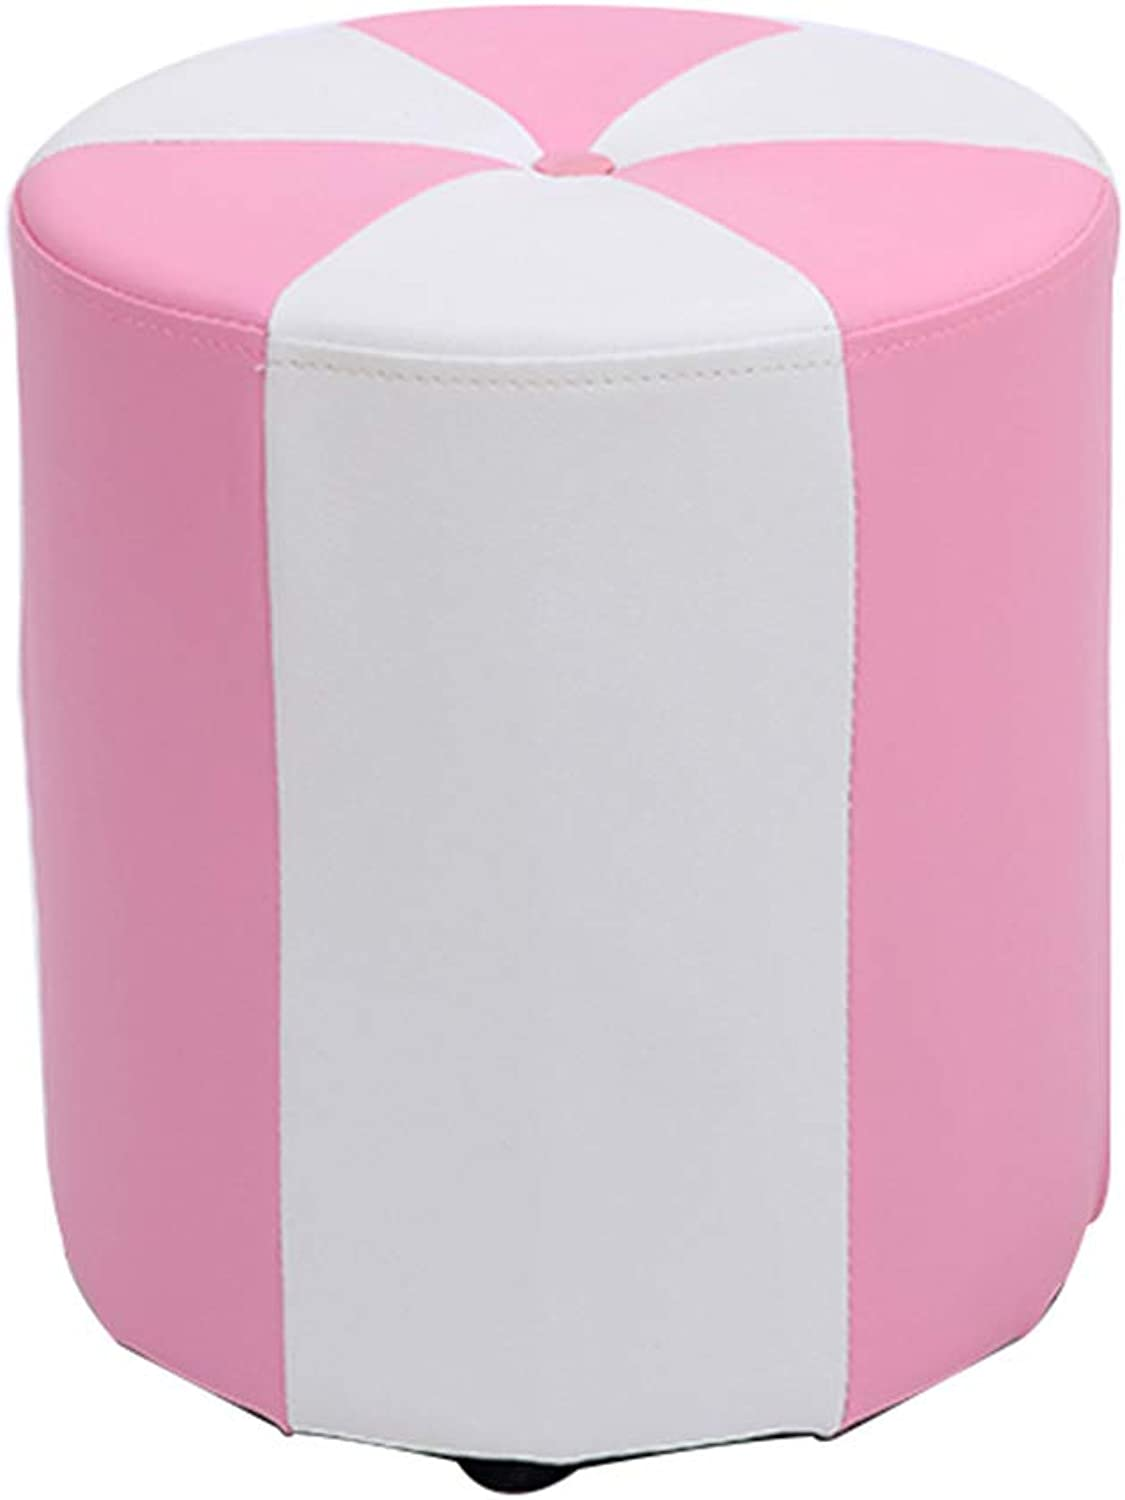 Step Stool,Household Vanity Stool,Wooden Frame Stable and Durable,Anti-Slip Footstool for Adults and Kids,Pink